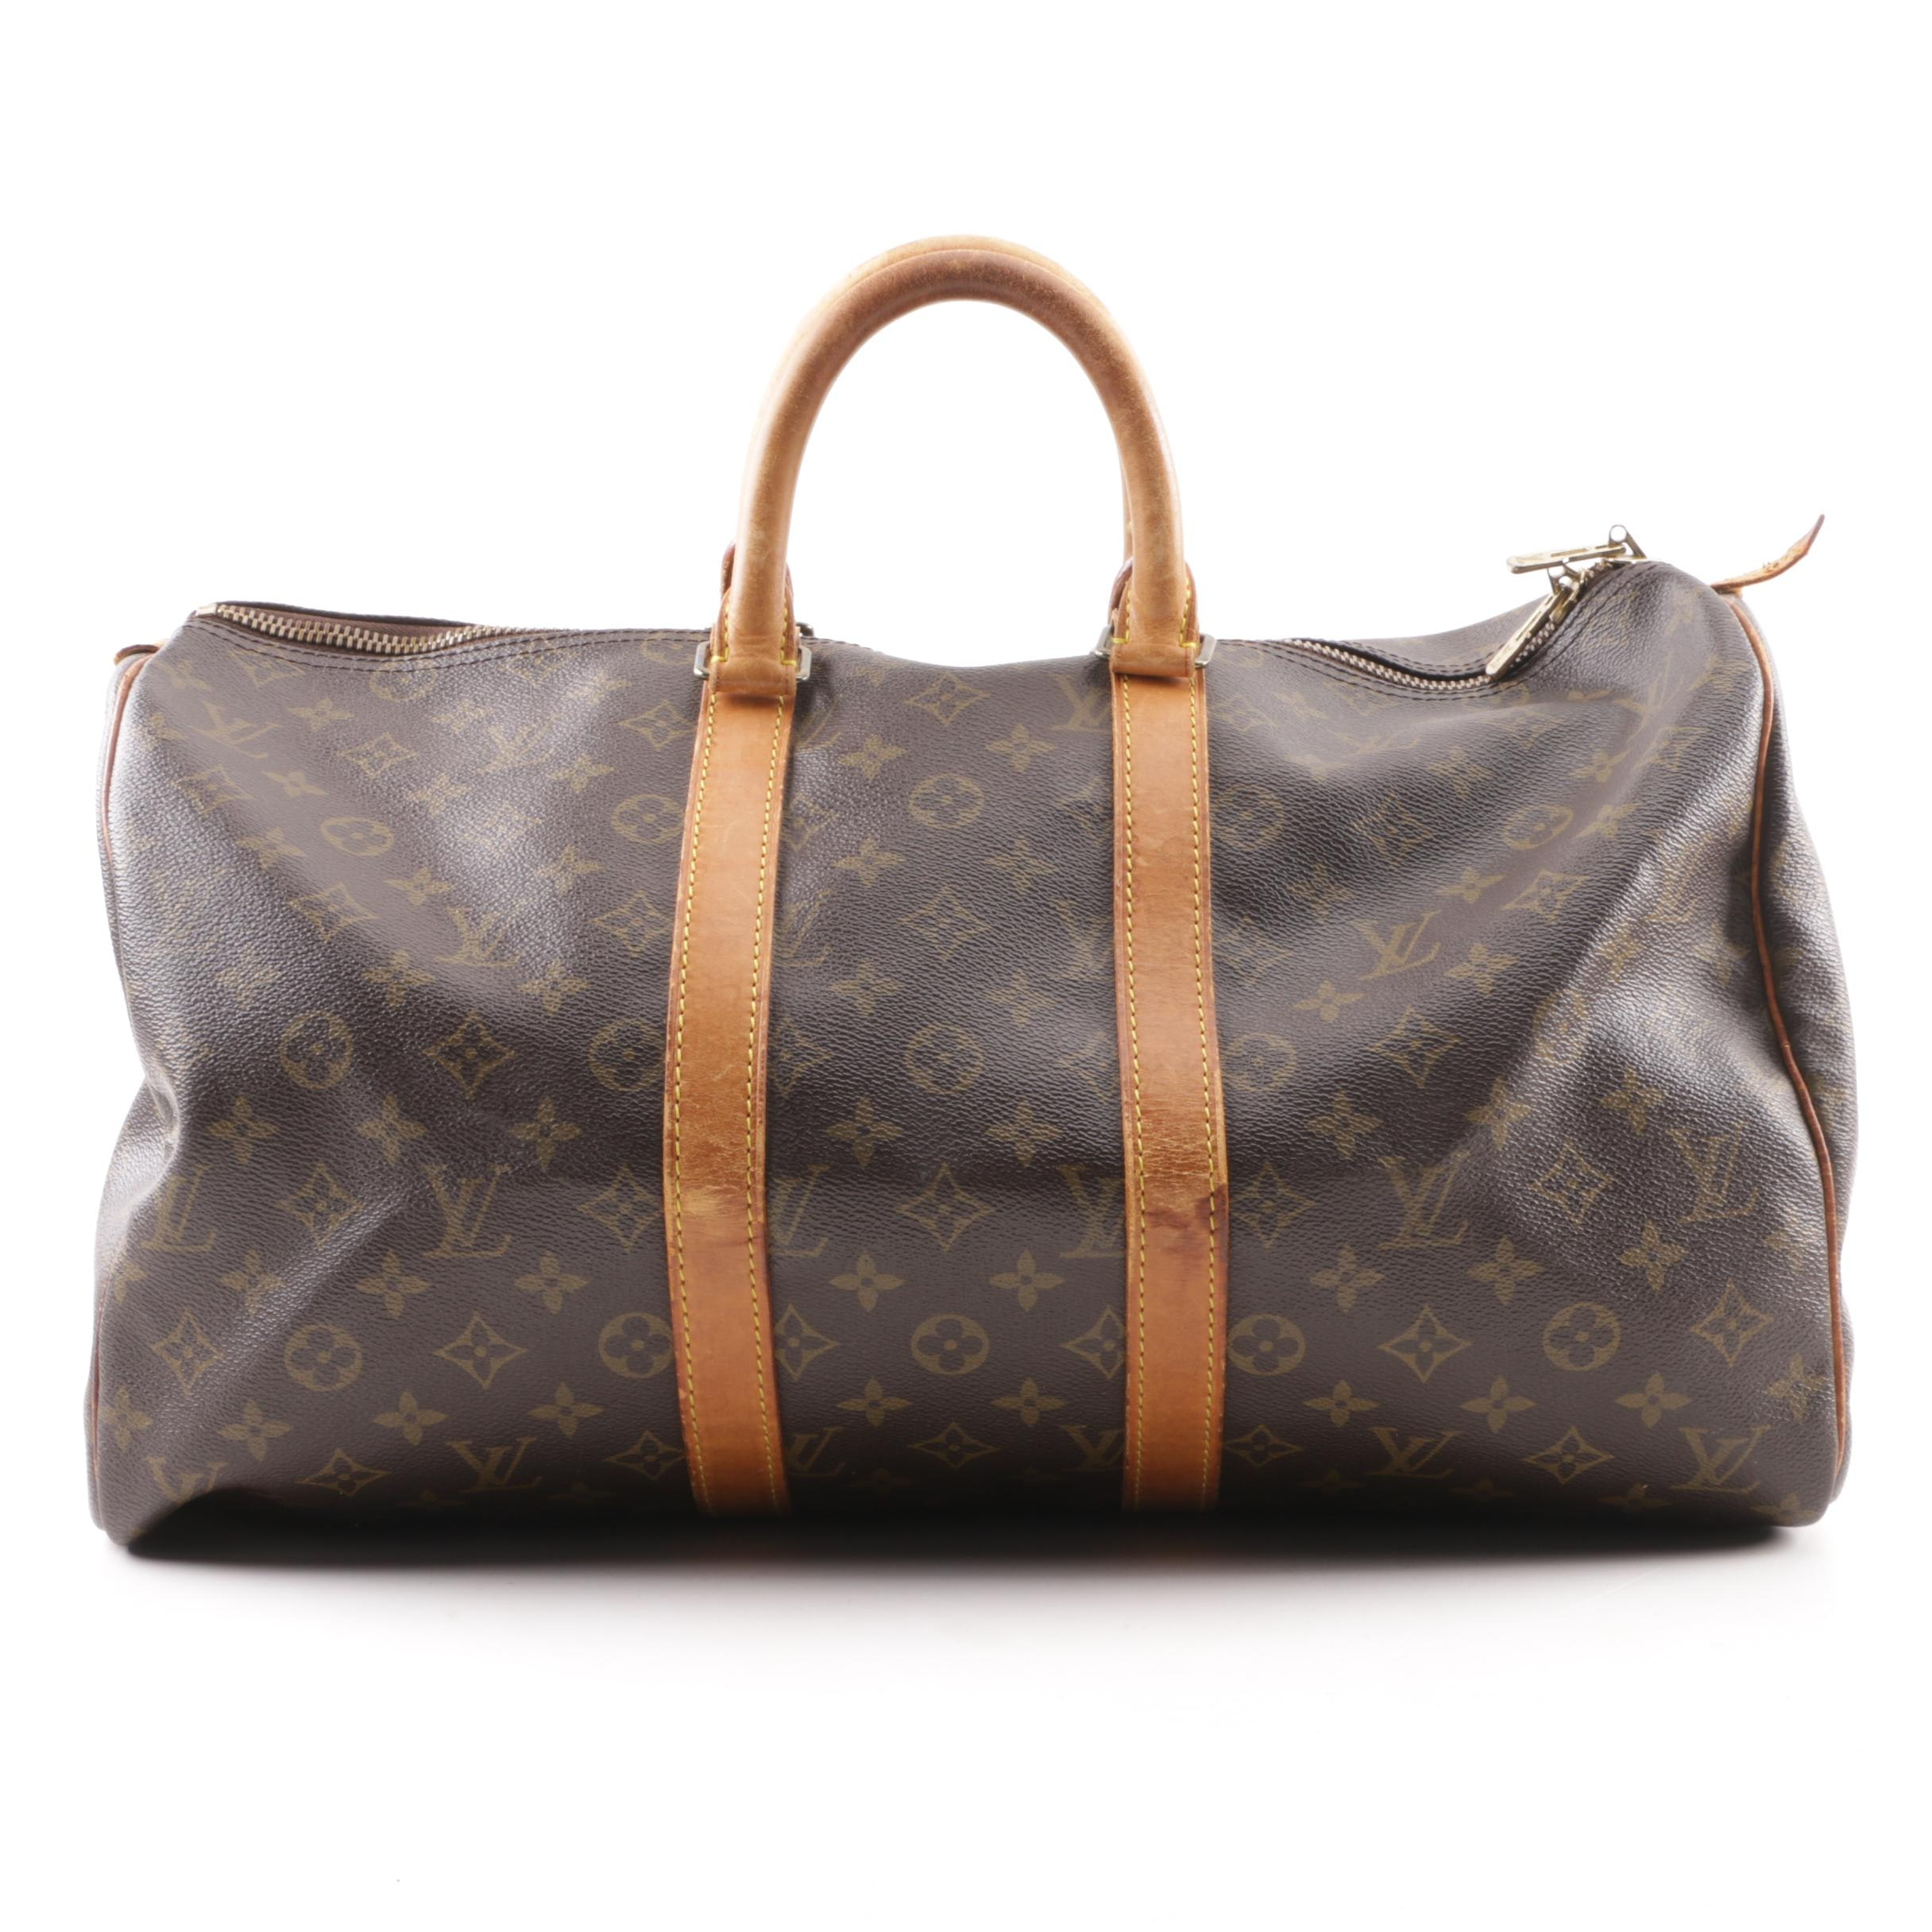 1990 Louis Vuitton Paris Monogram Canvas Keepall Duffel